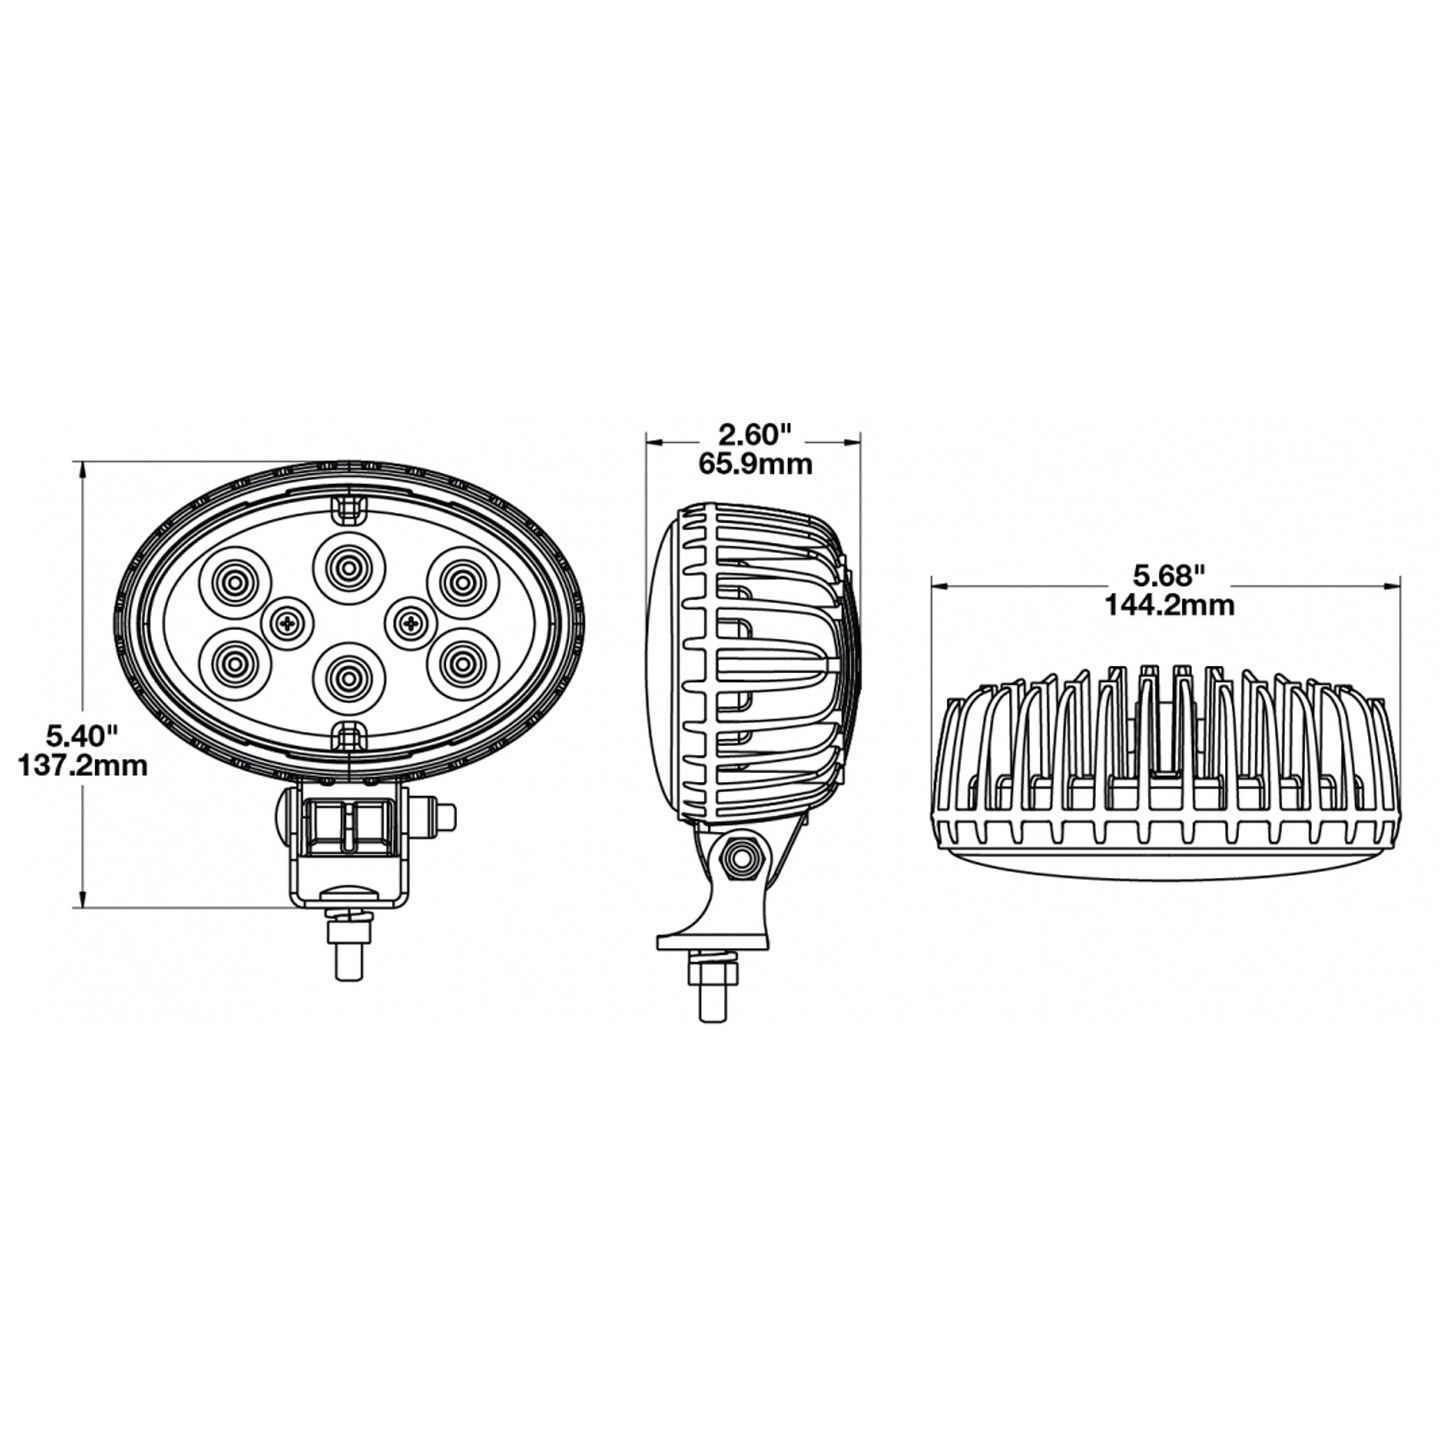 LED Work Light - Model 735